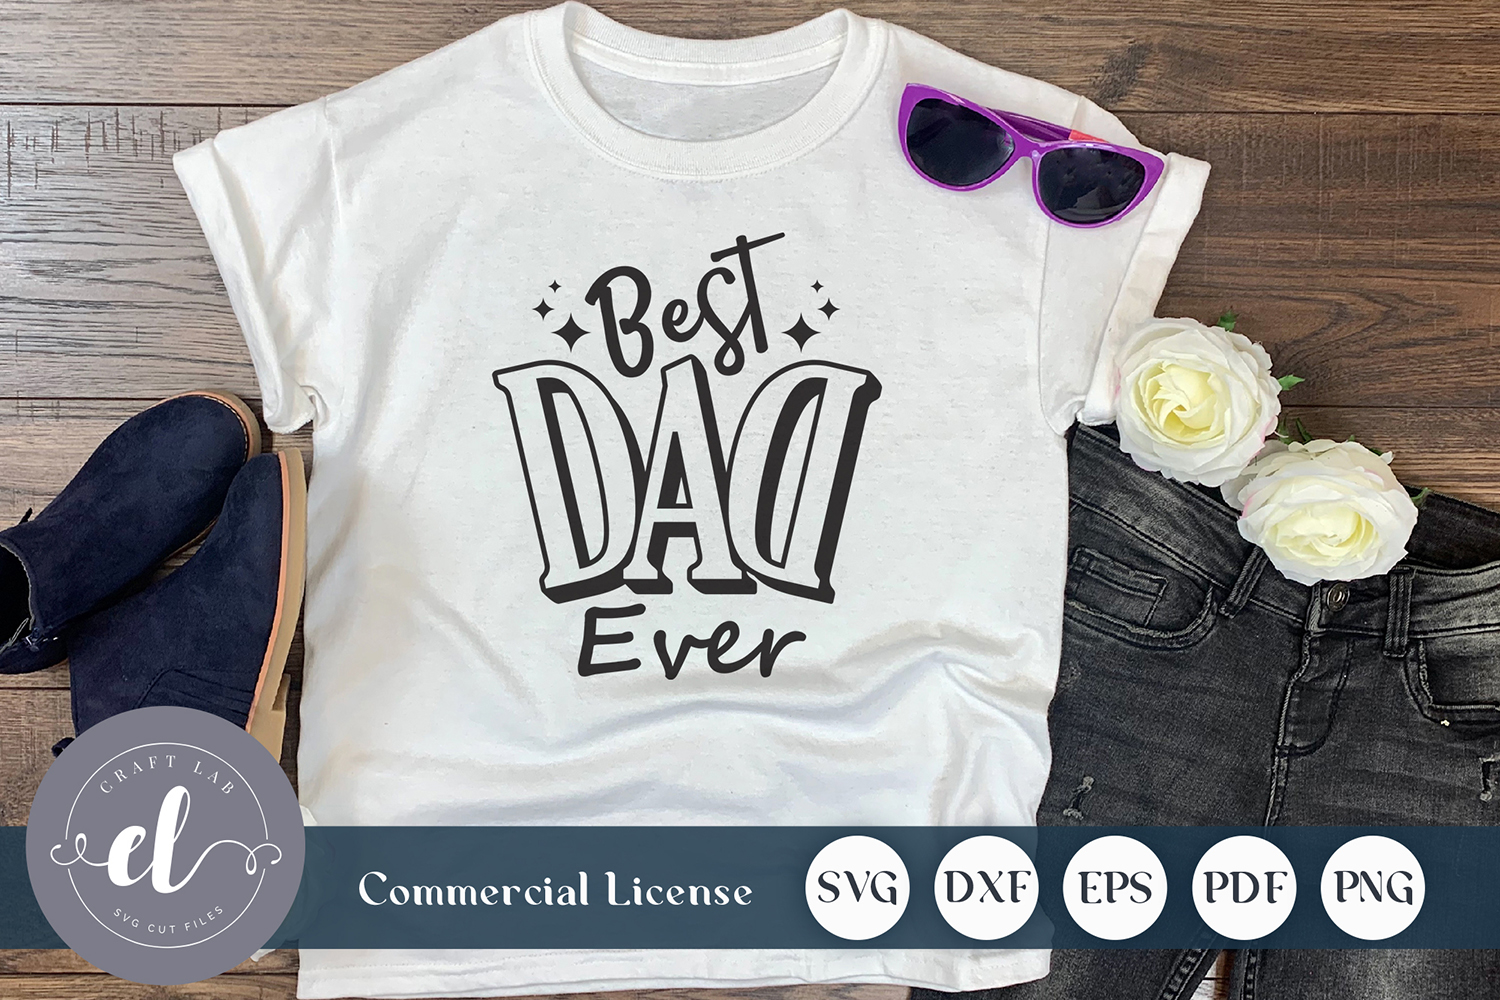 Download Free Best Dad Ever Graphic By Craftlabsvg Creative Fabrica for Cricut Explore, Silhouette and other cutting machines.